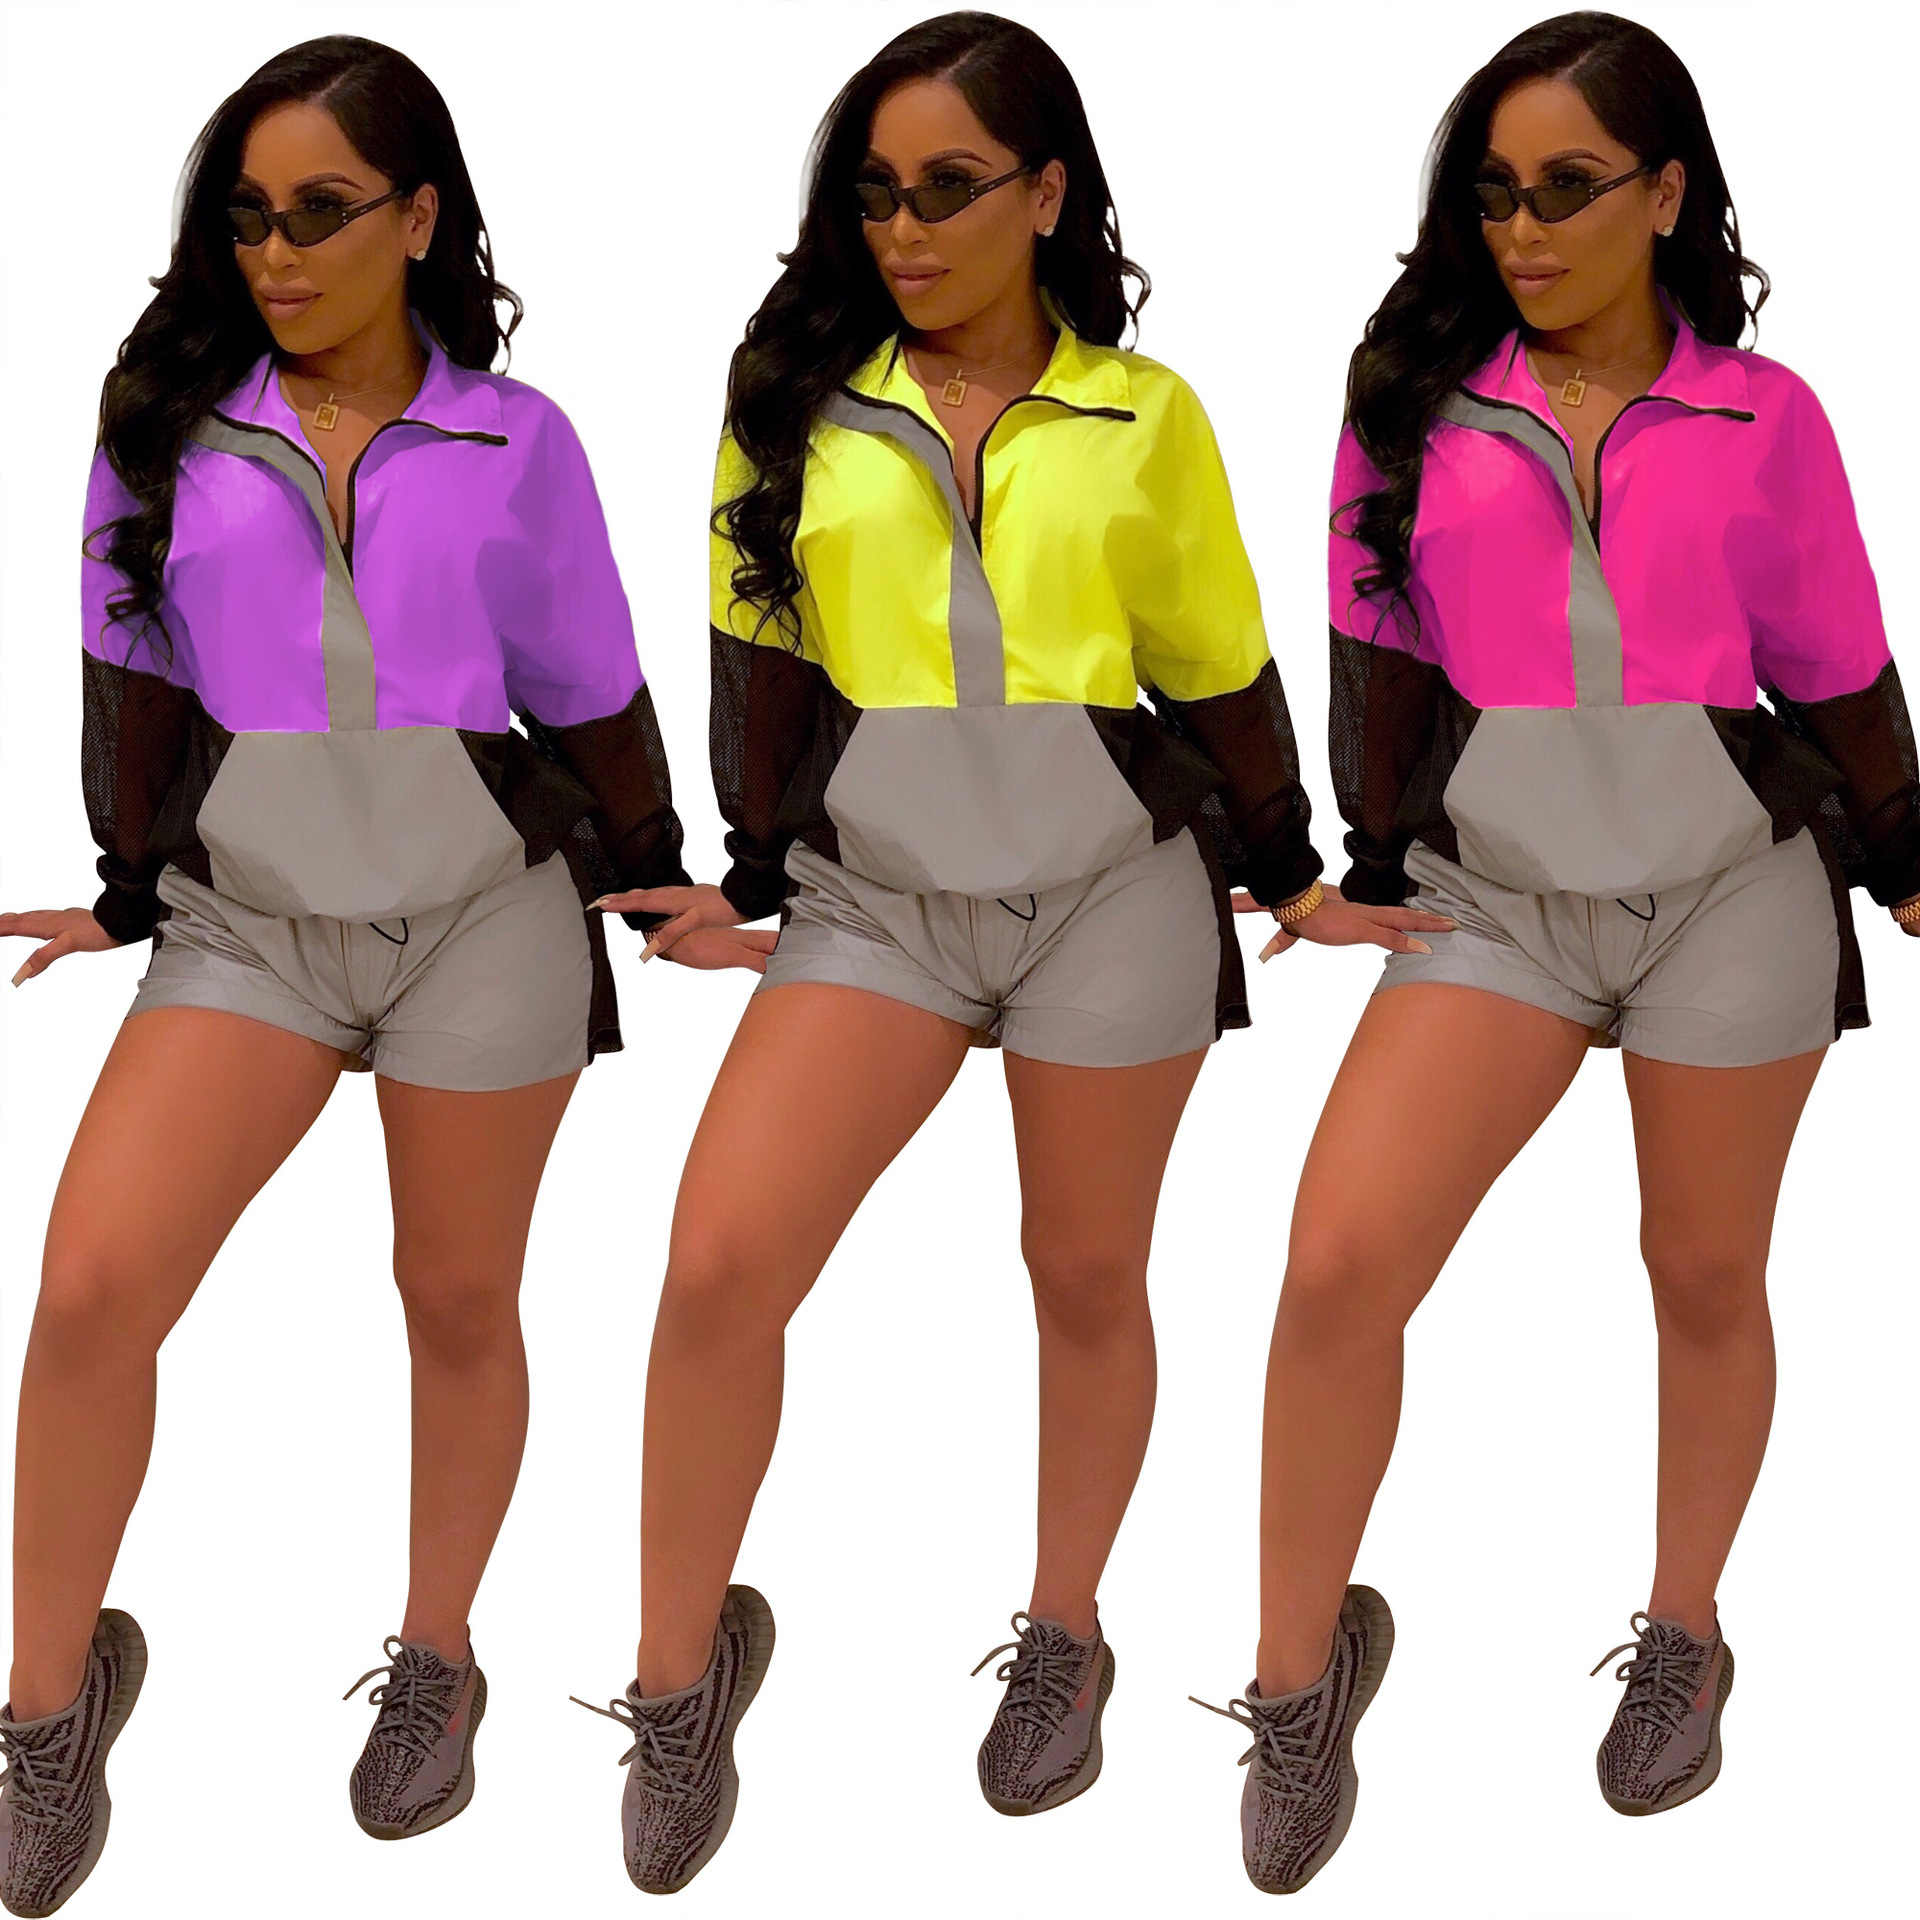 2019 women's long-sleeved splice zipper trench top shorts suit 2 pieces sport safari tracksuit suit 3 color QJ5239